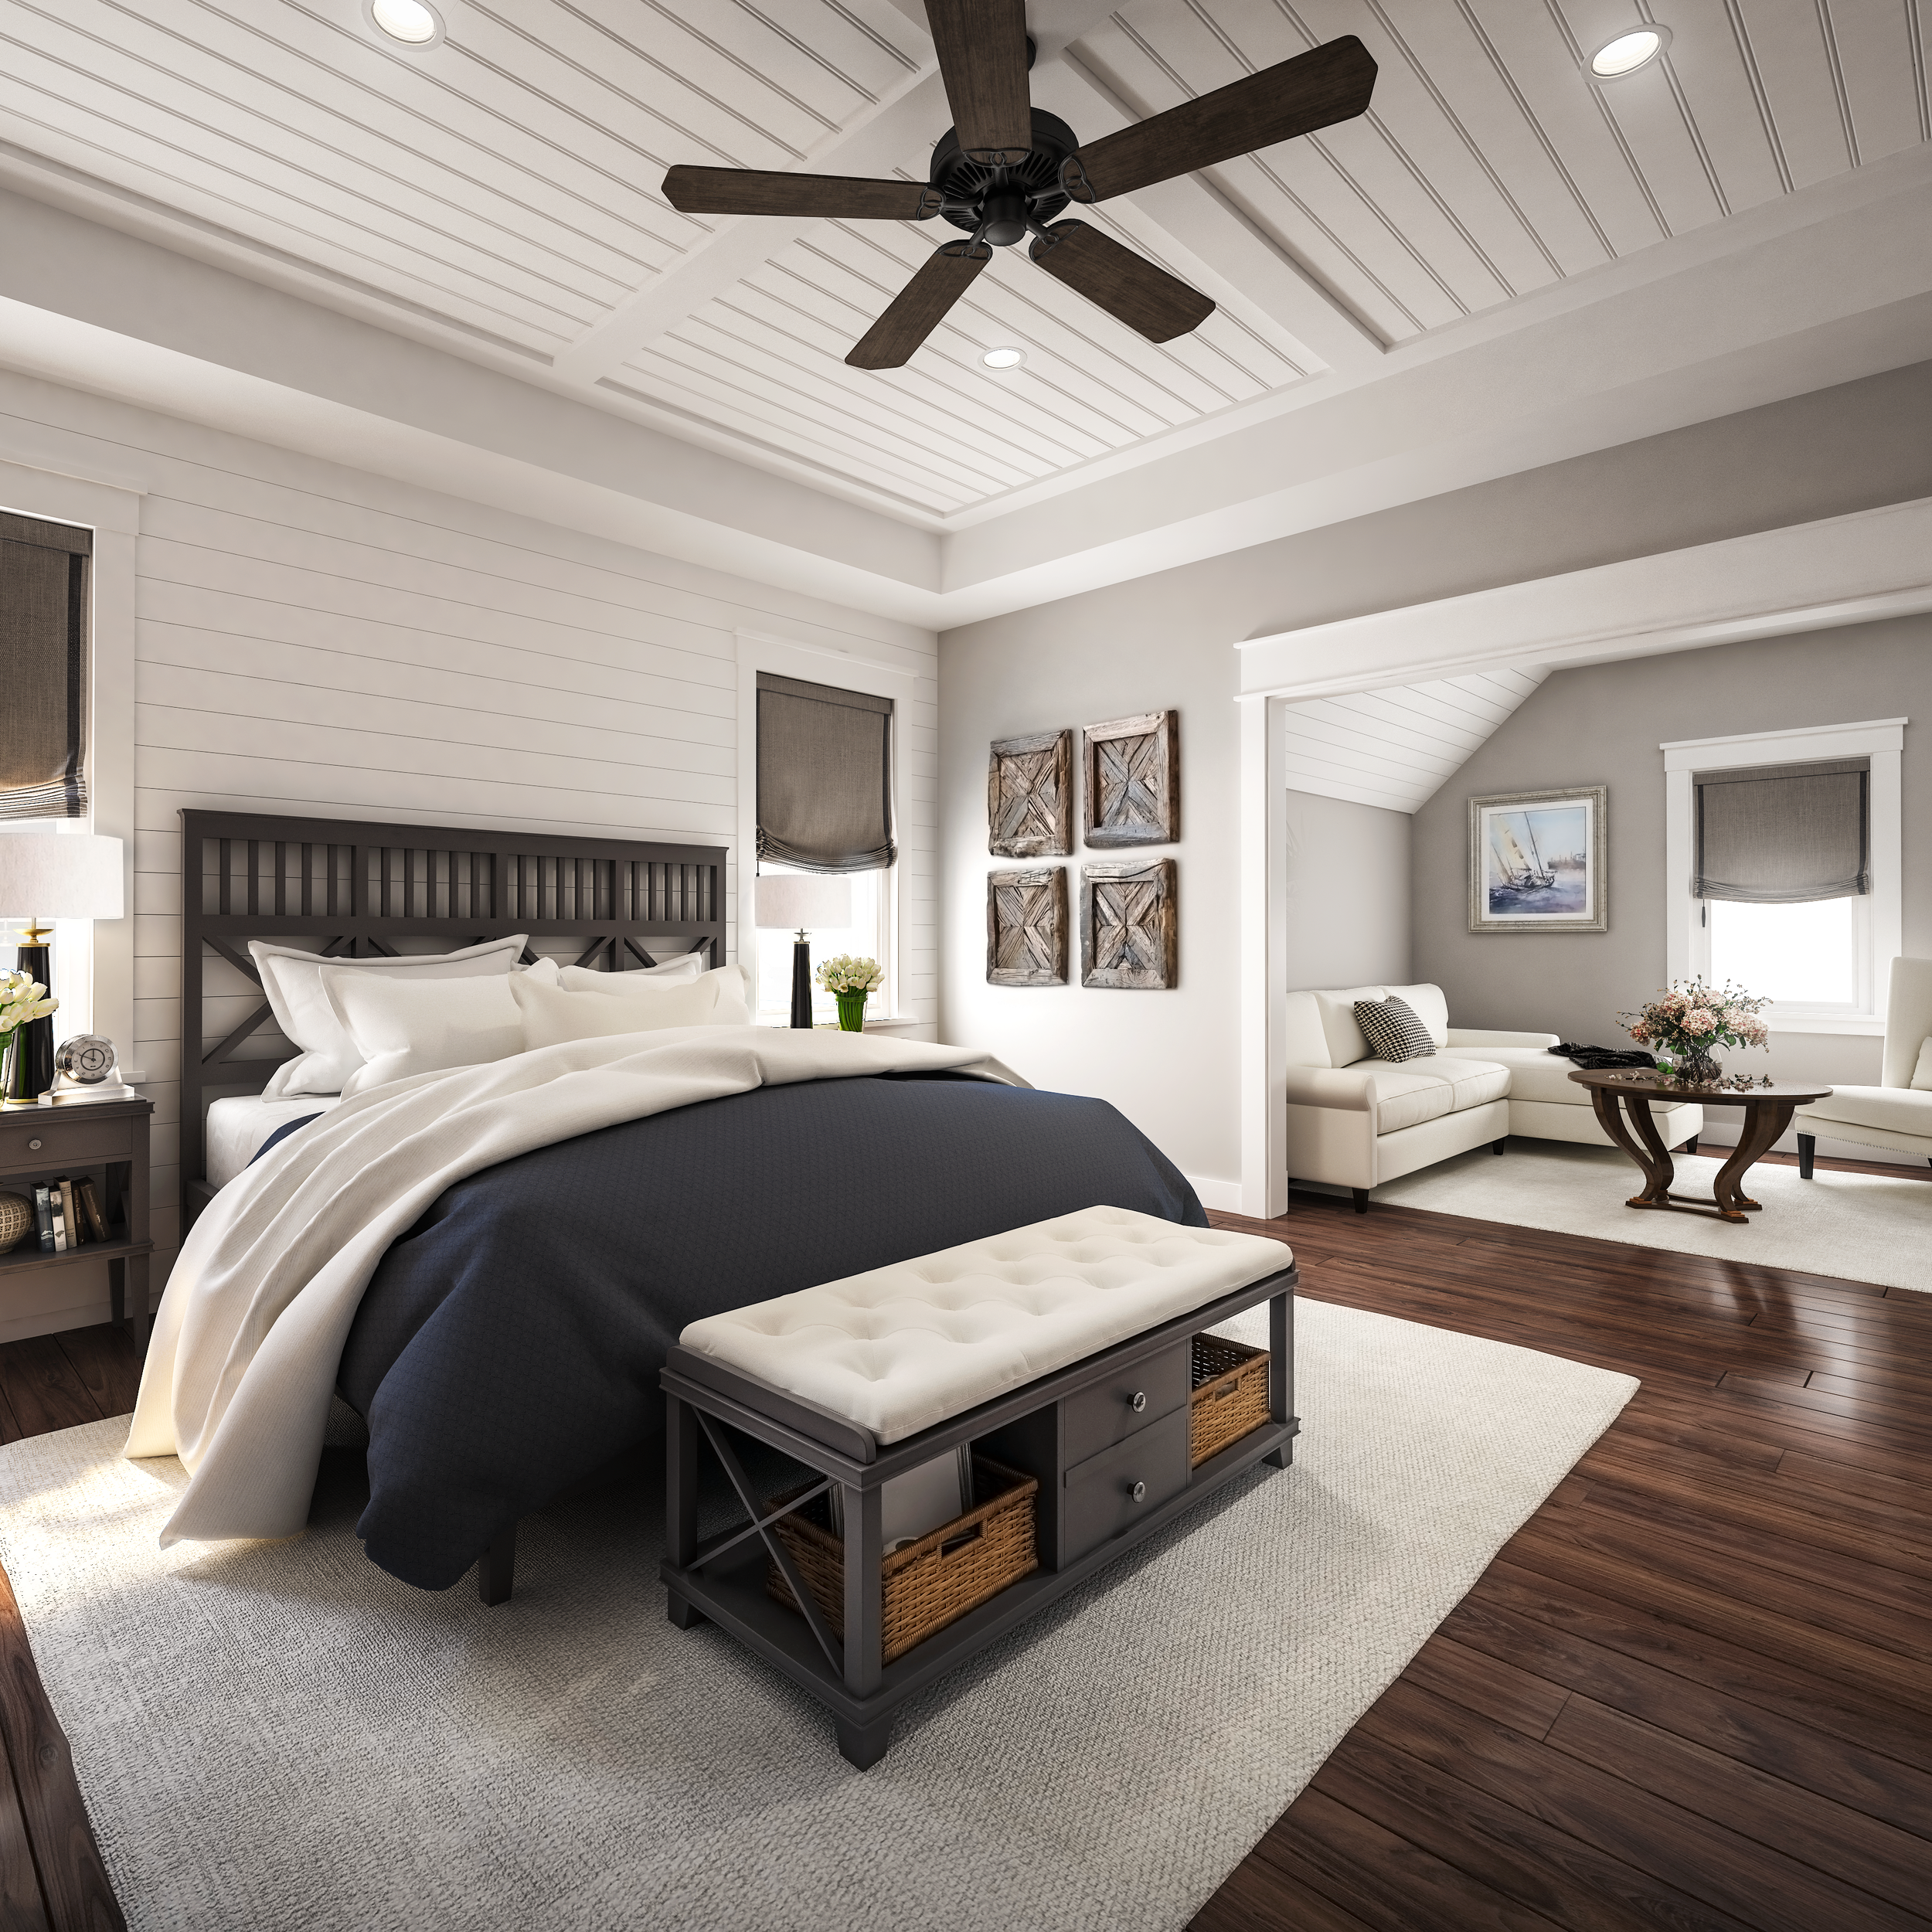 Sandy Ridge_View at Master Bedroom_Final_C.png